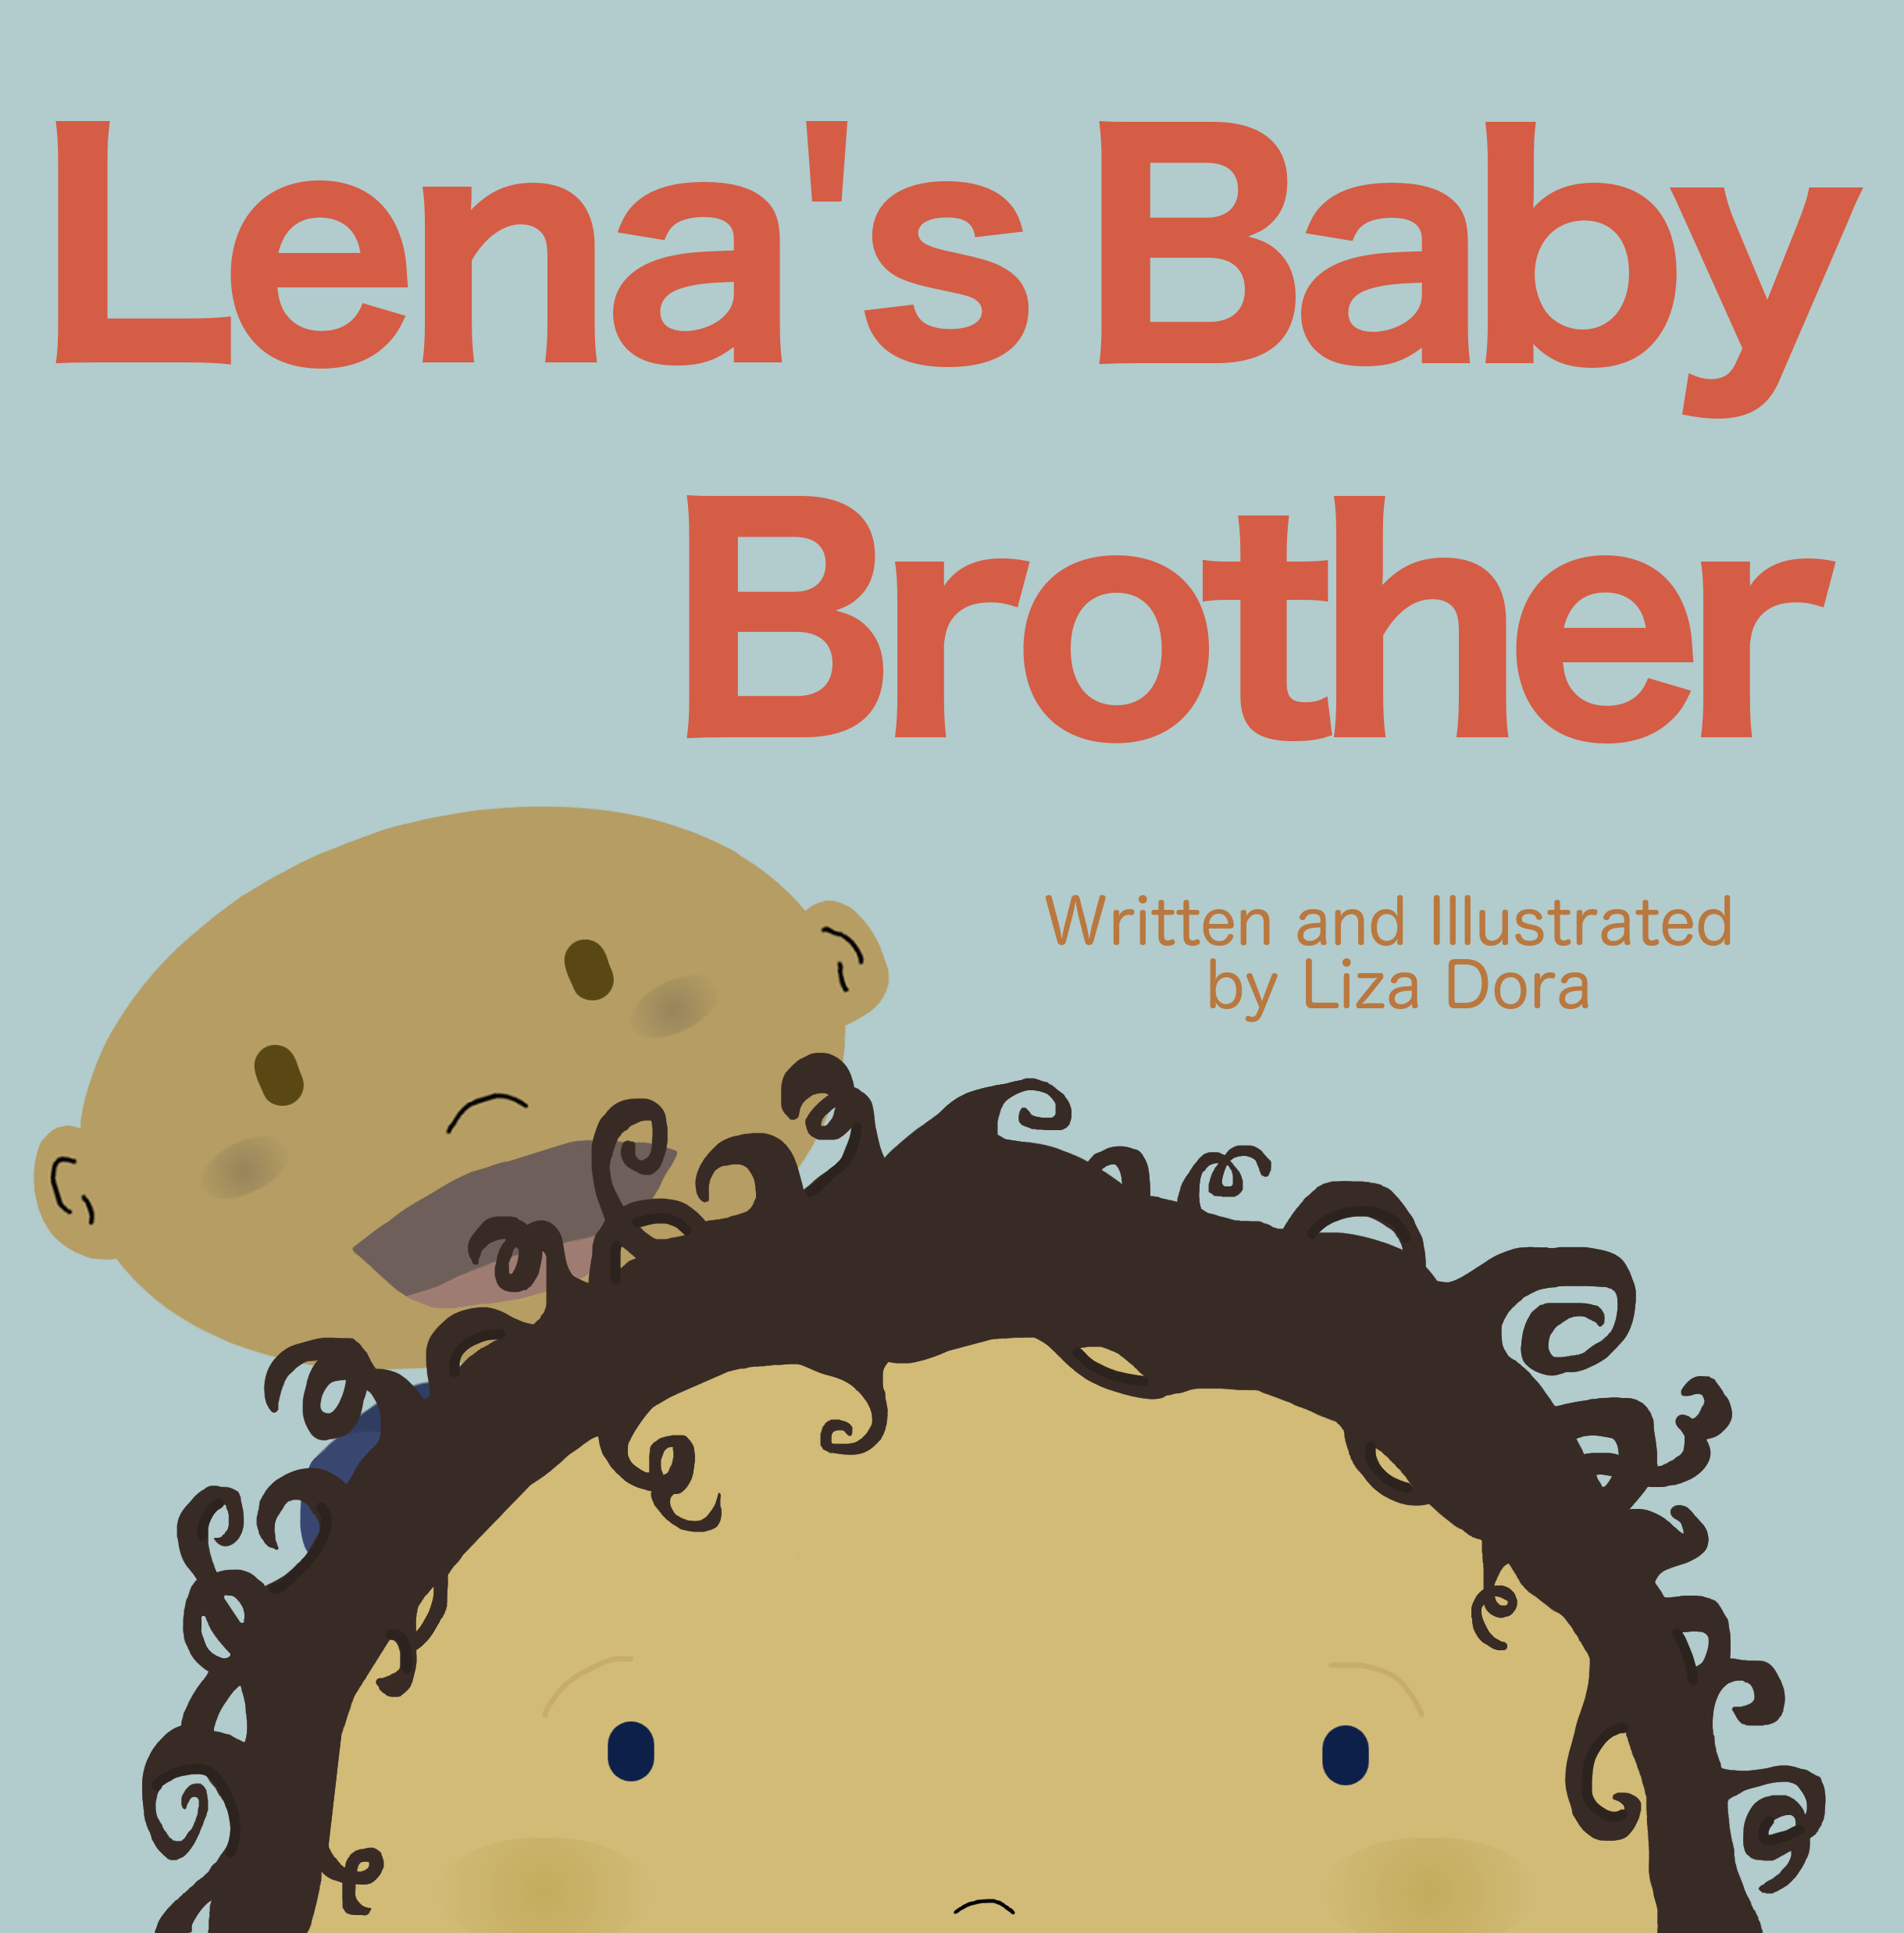 leans-baby-brother-by-liza-dora